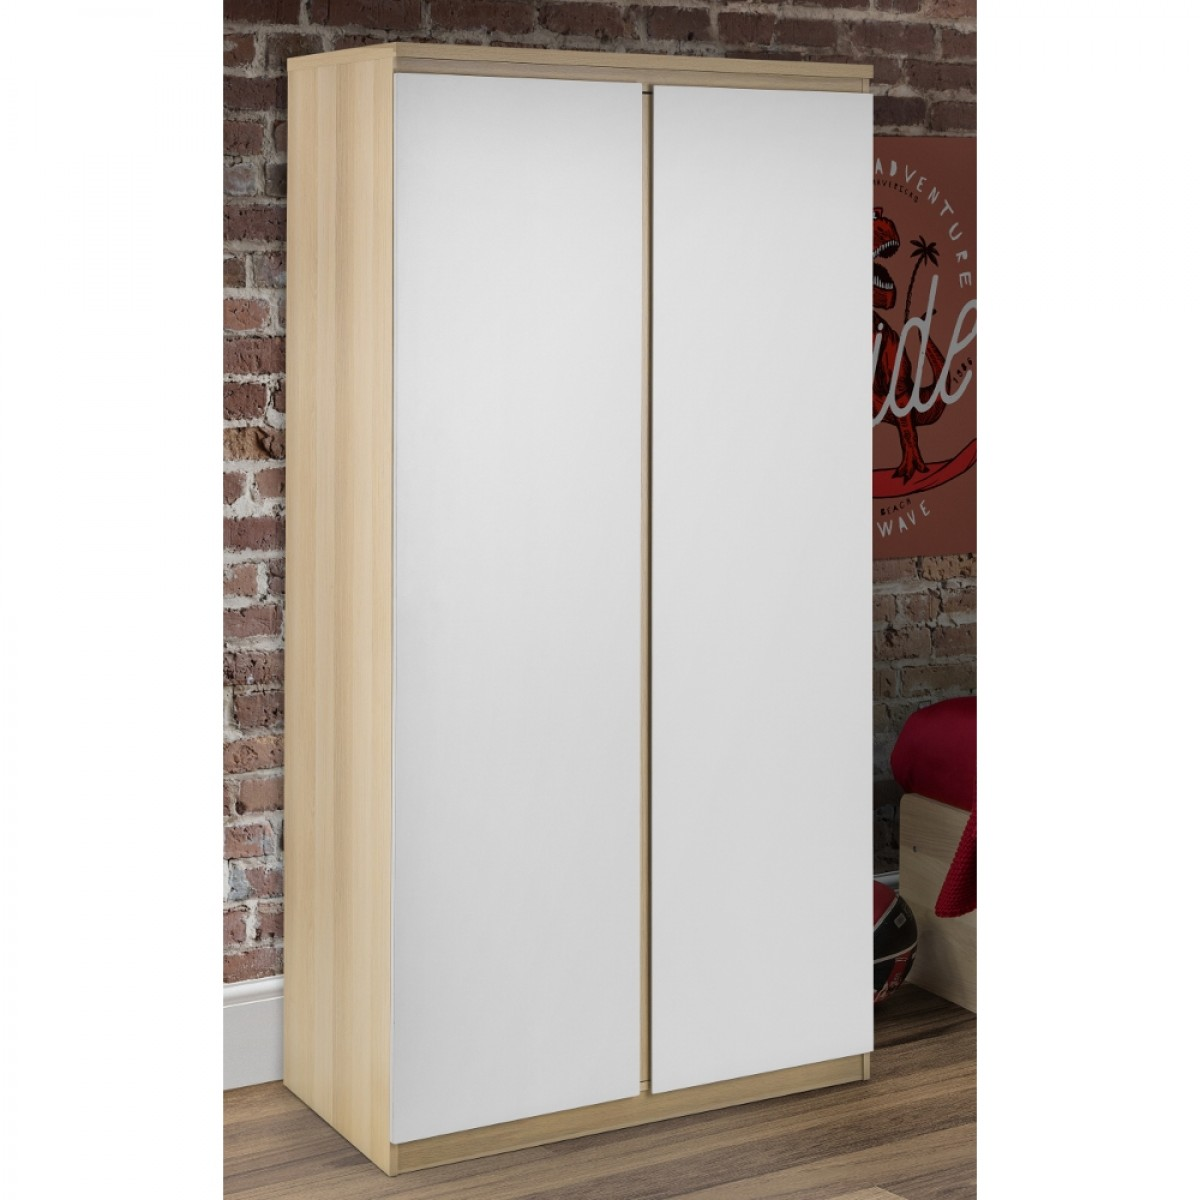 Jupiter Oak and White 2 Door Wardrobe